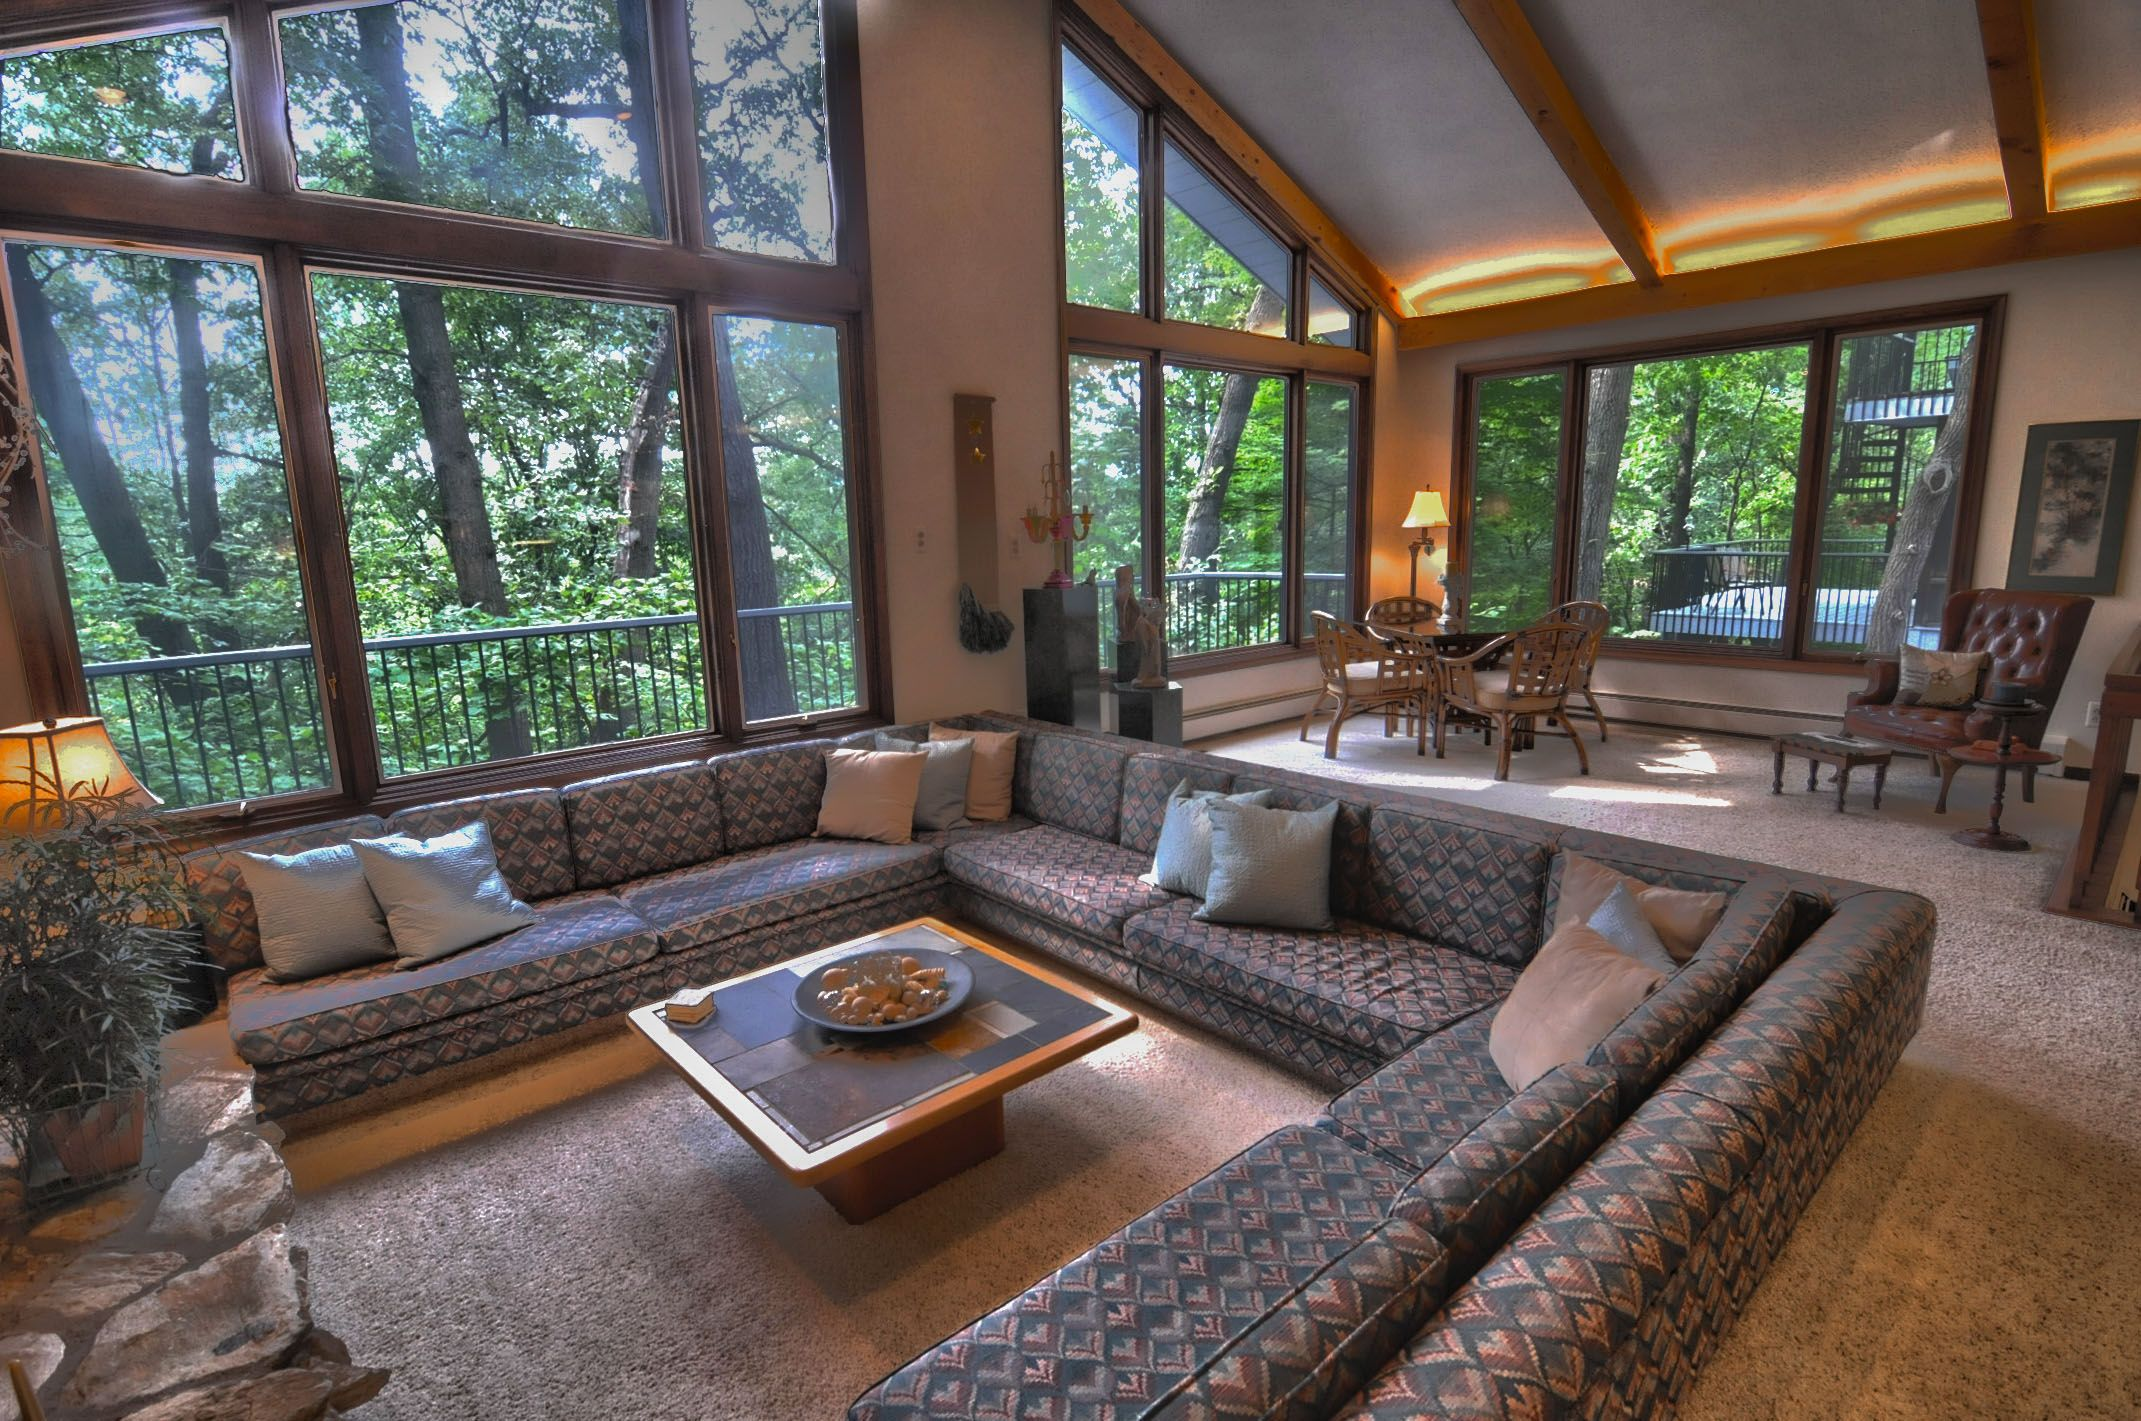 11 Unique & Cool Sunken Living Room Ideas for Your Dreamed ...